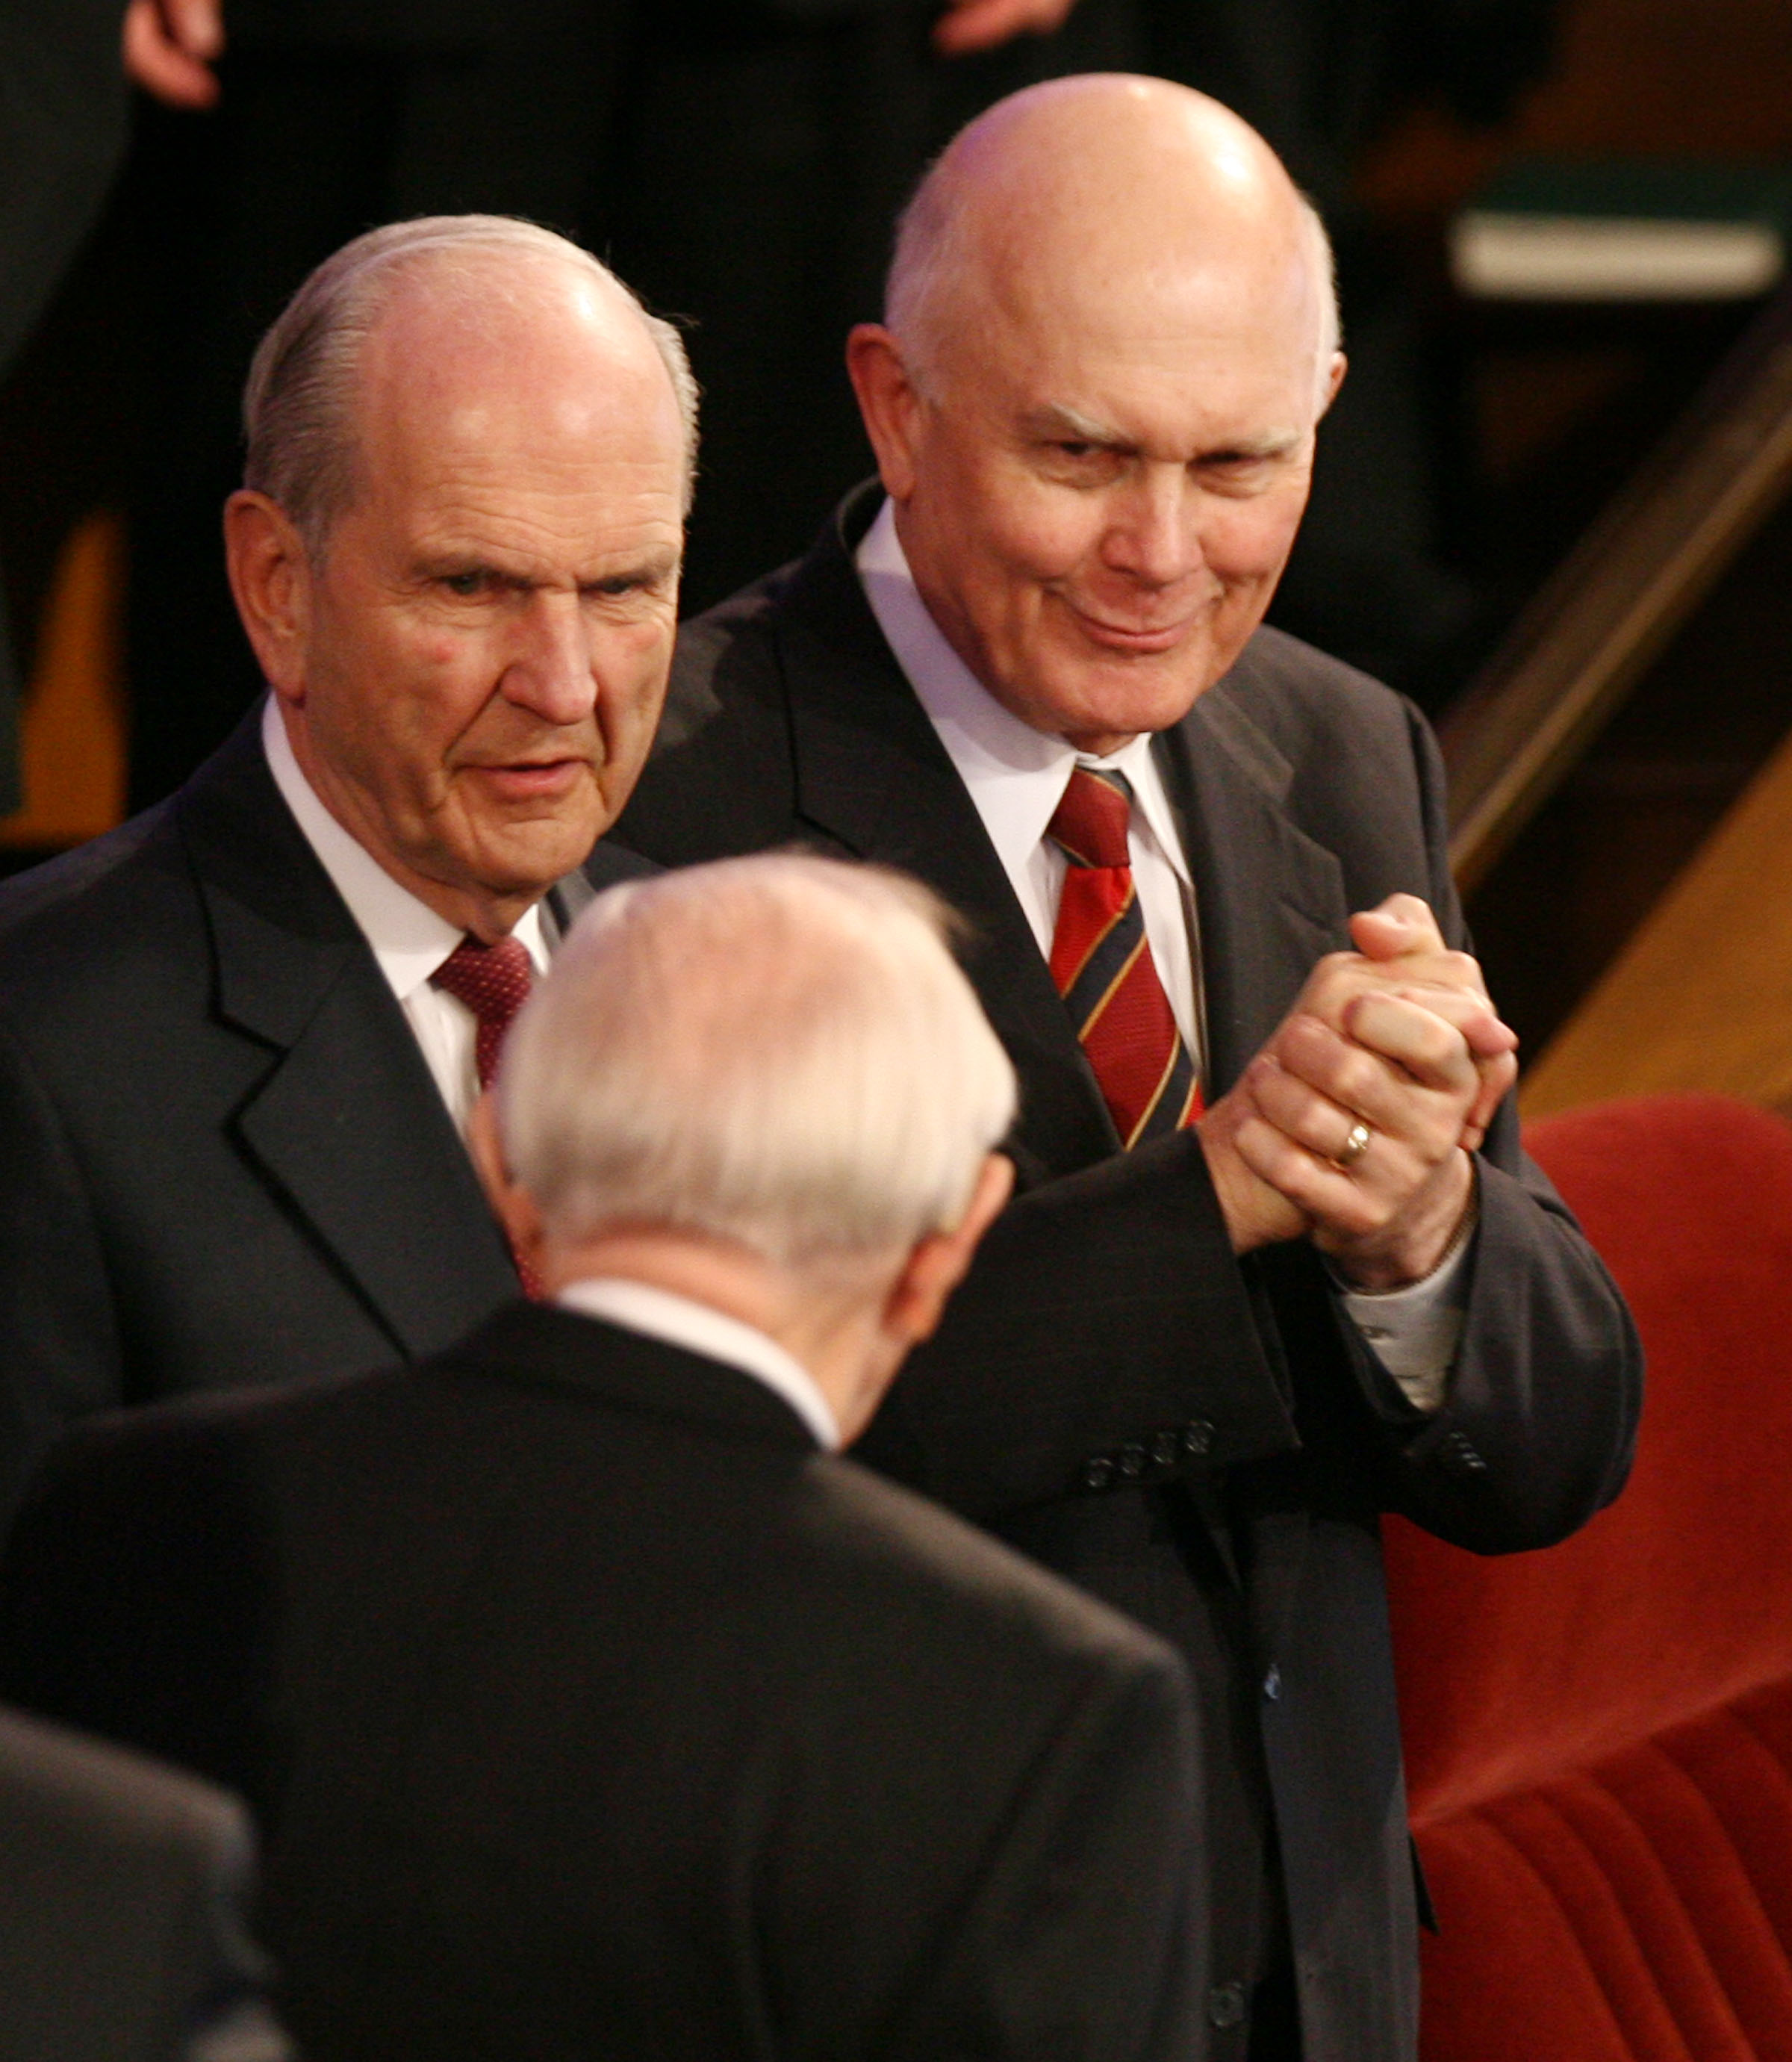 Elder Dallin H. Oaks (right) gestures to President Gordon B. Hinckley as President Hinckley passes him and Elder Russell M. Nelson while leaving the Salt Lake Tabernacle on Temple Square following the afternoon session of The Church of Jesus Christ of Latter-day Saints' 177th Annual General Conference March 31, 2007.